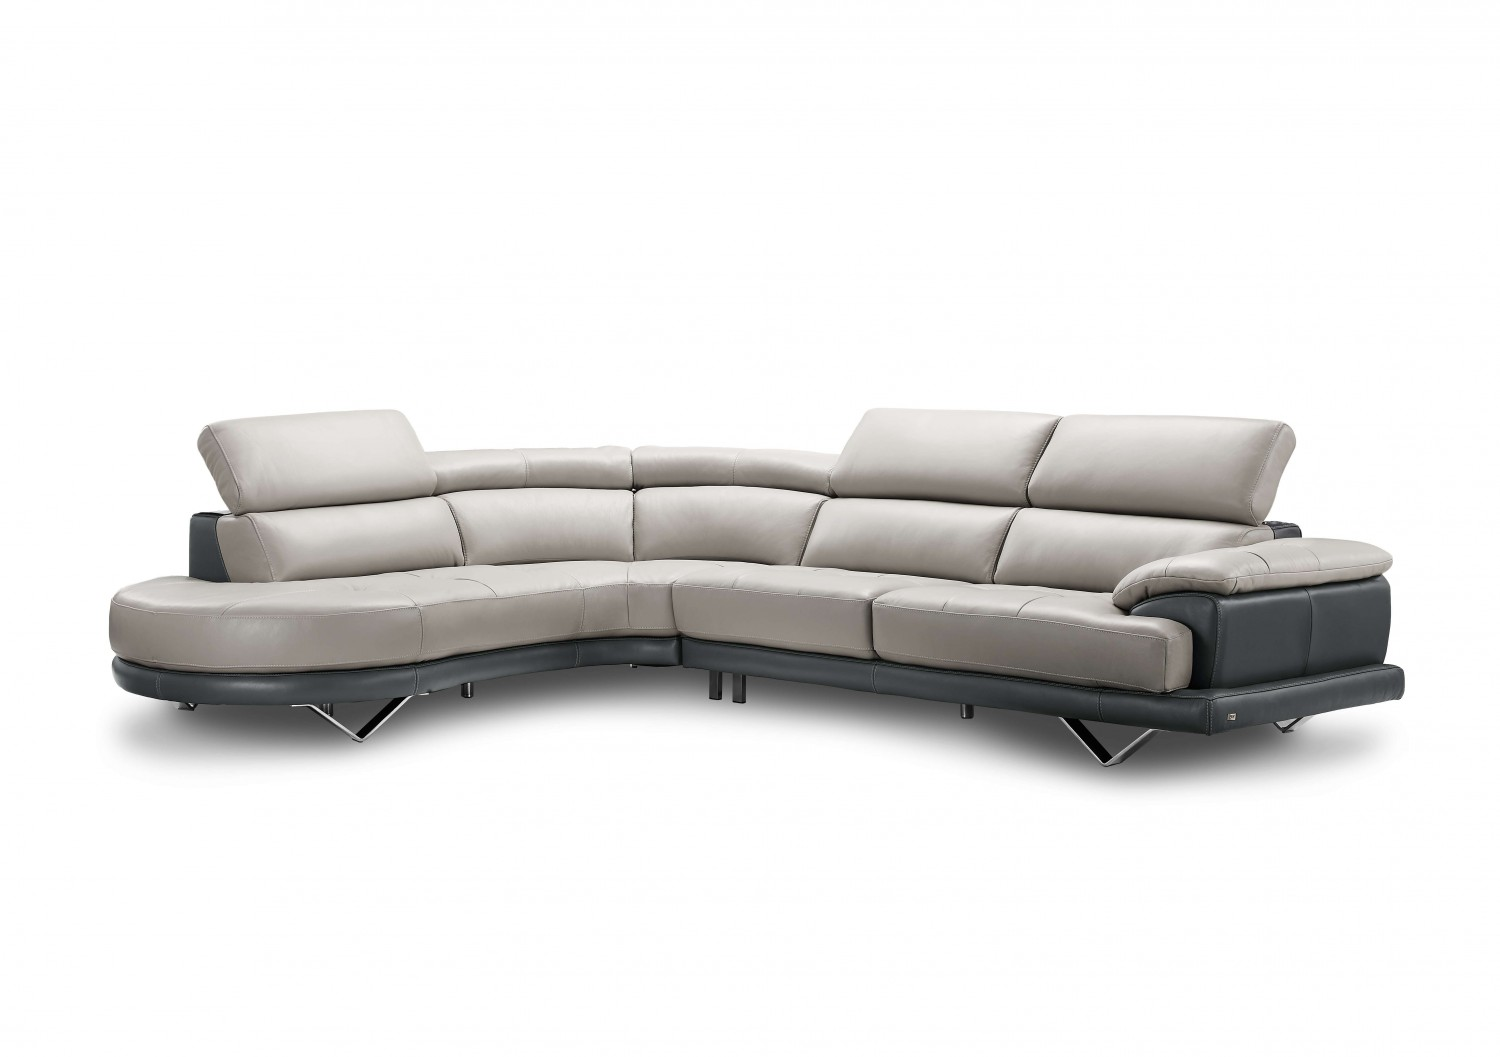 Unusual Sofas To Buy Buy Cecile Leather Sectional Sofas By Creative Furniture